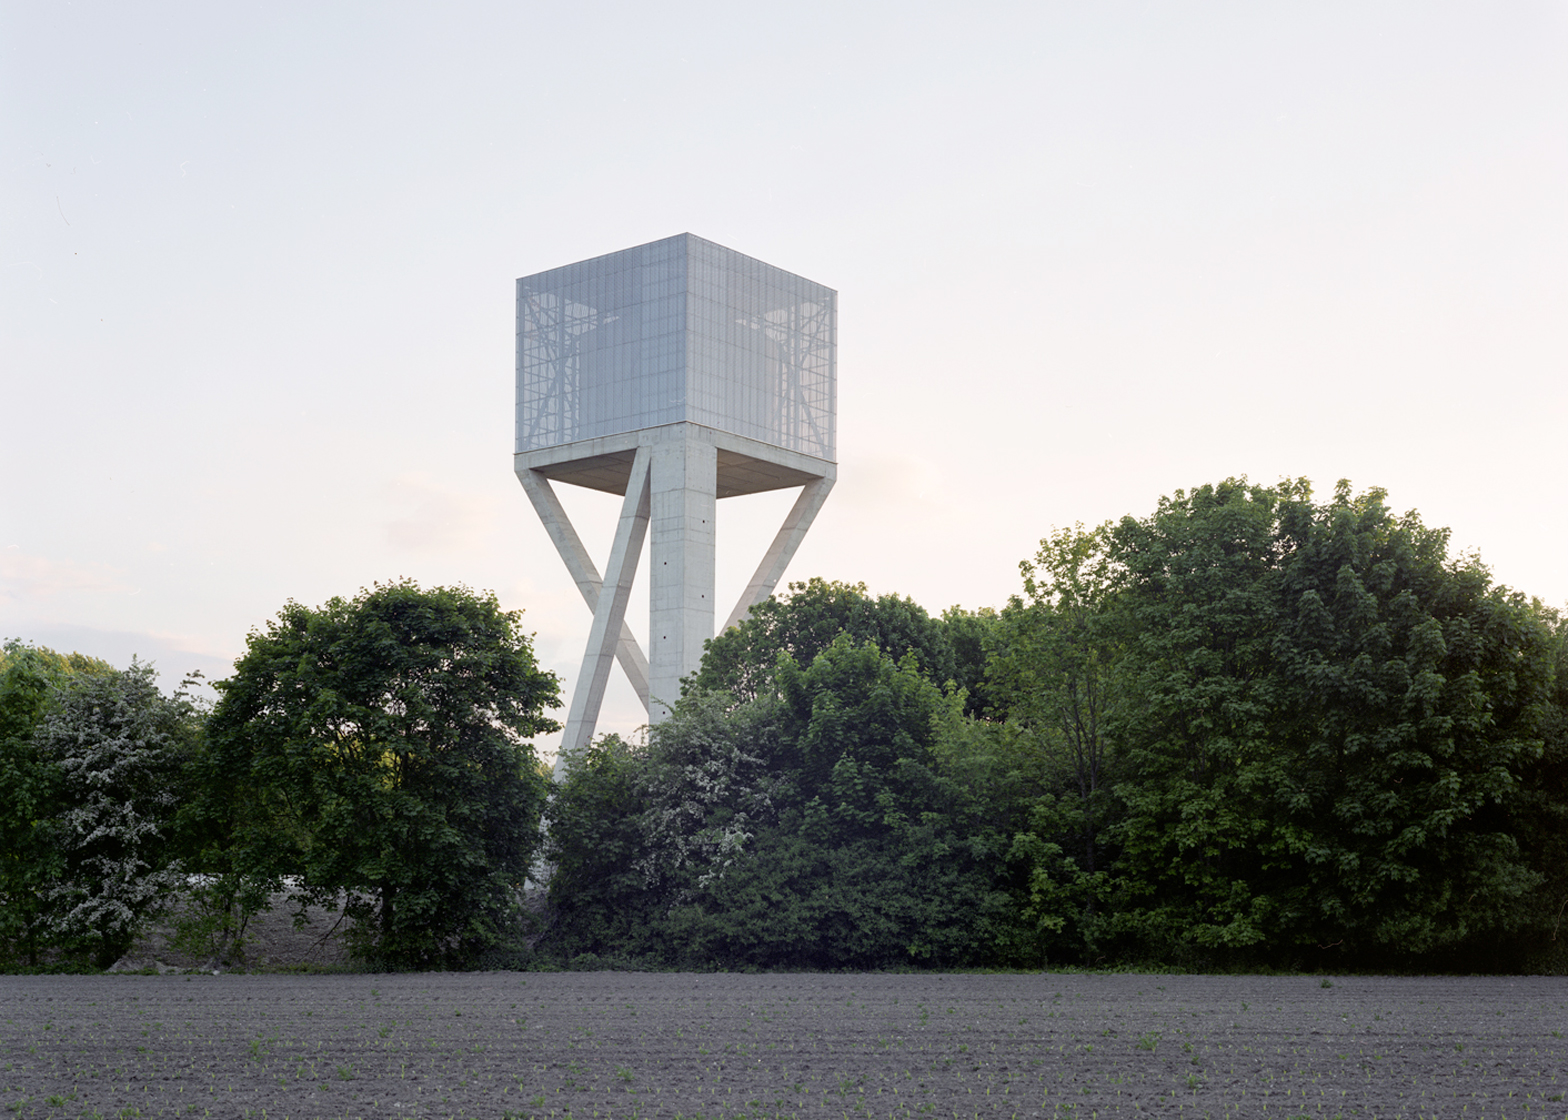 V+'s Chateau D'eau water tower